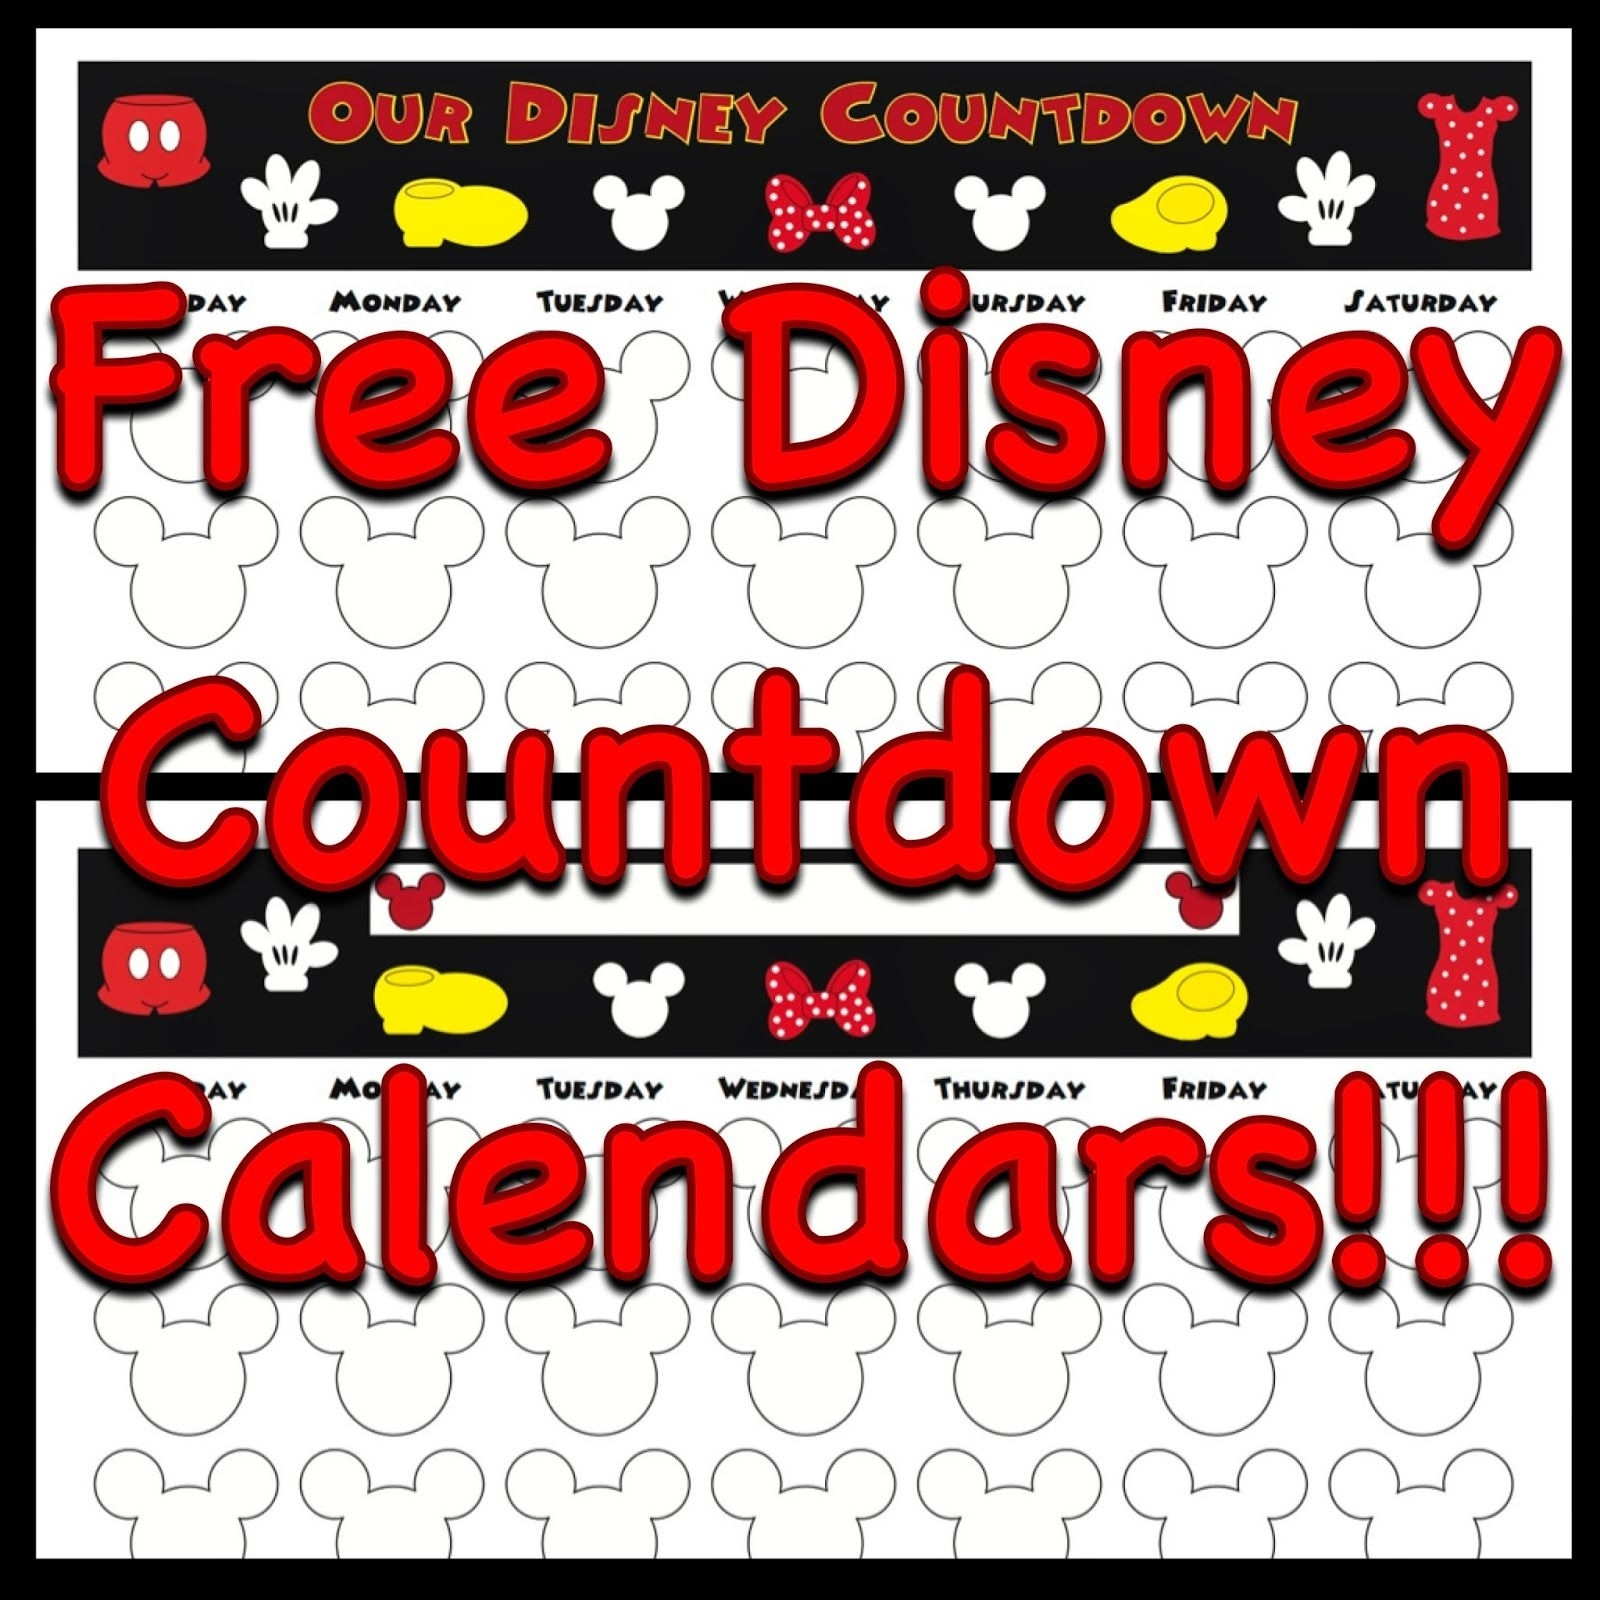 Free, Printable Countdown Calendars To Use For Your Next Disney Trip Disney Countdown Calendar App